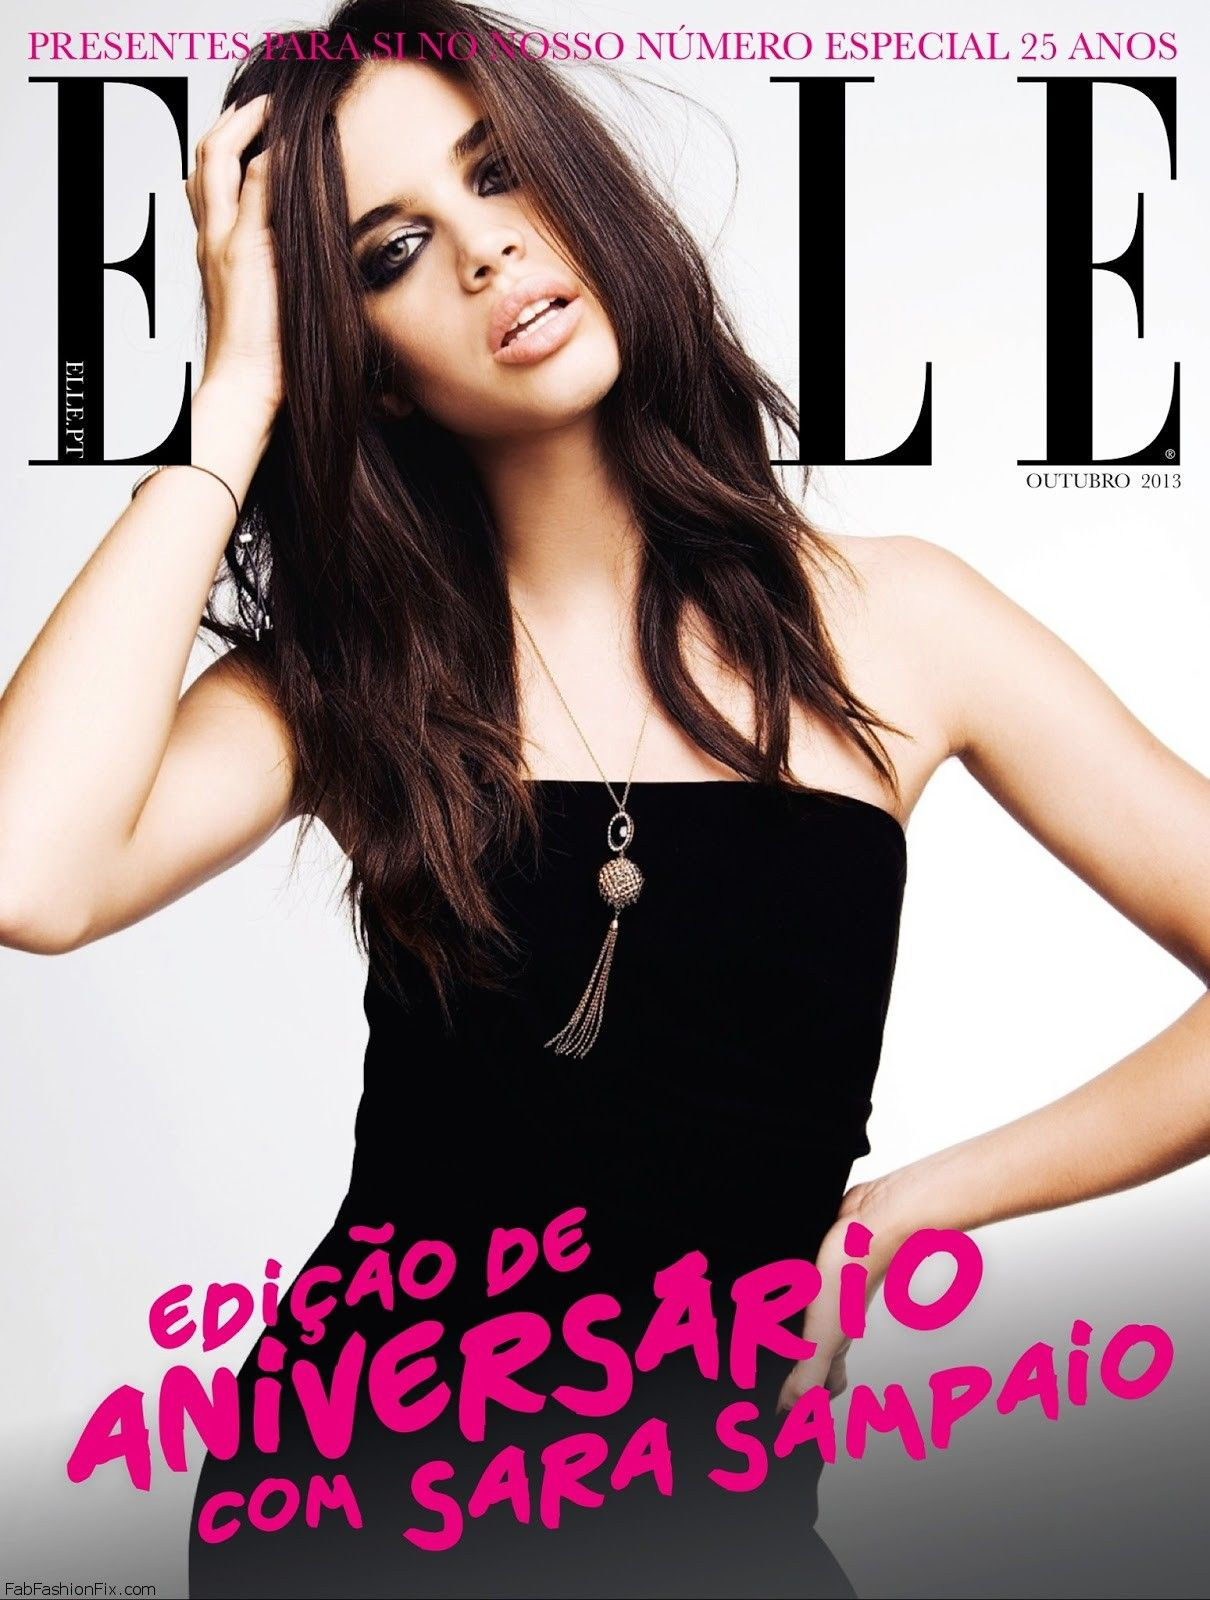 fashion_scans_remastered-sara_sampaio-elle_portugal-october_2013-scanned_by_vampirehorde-hq-4